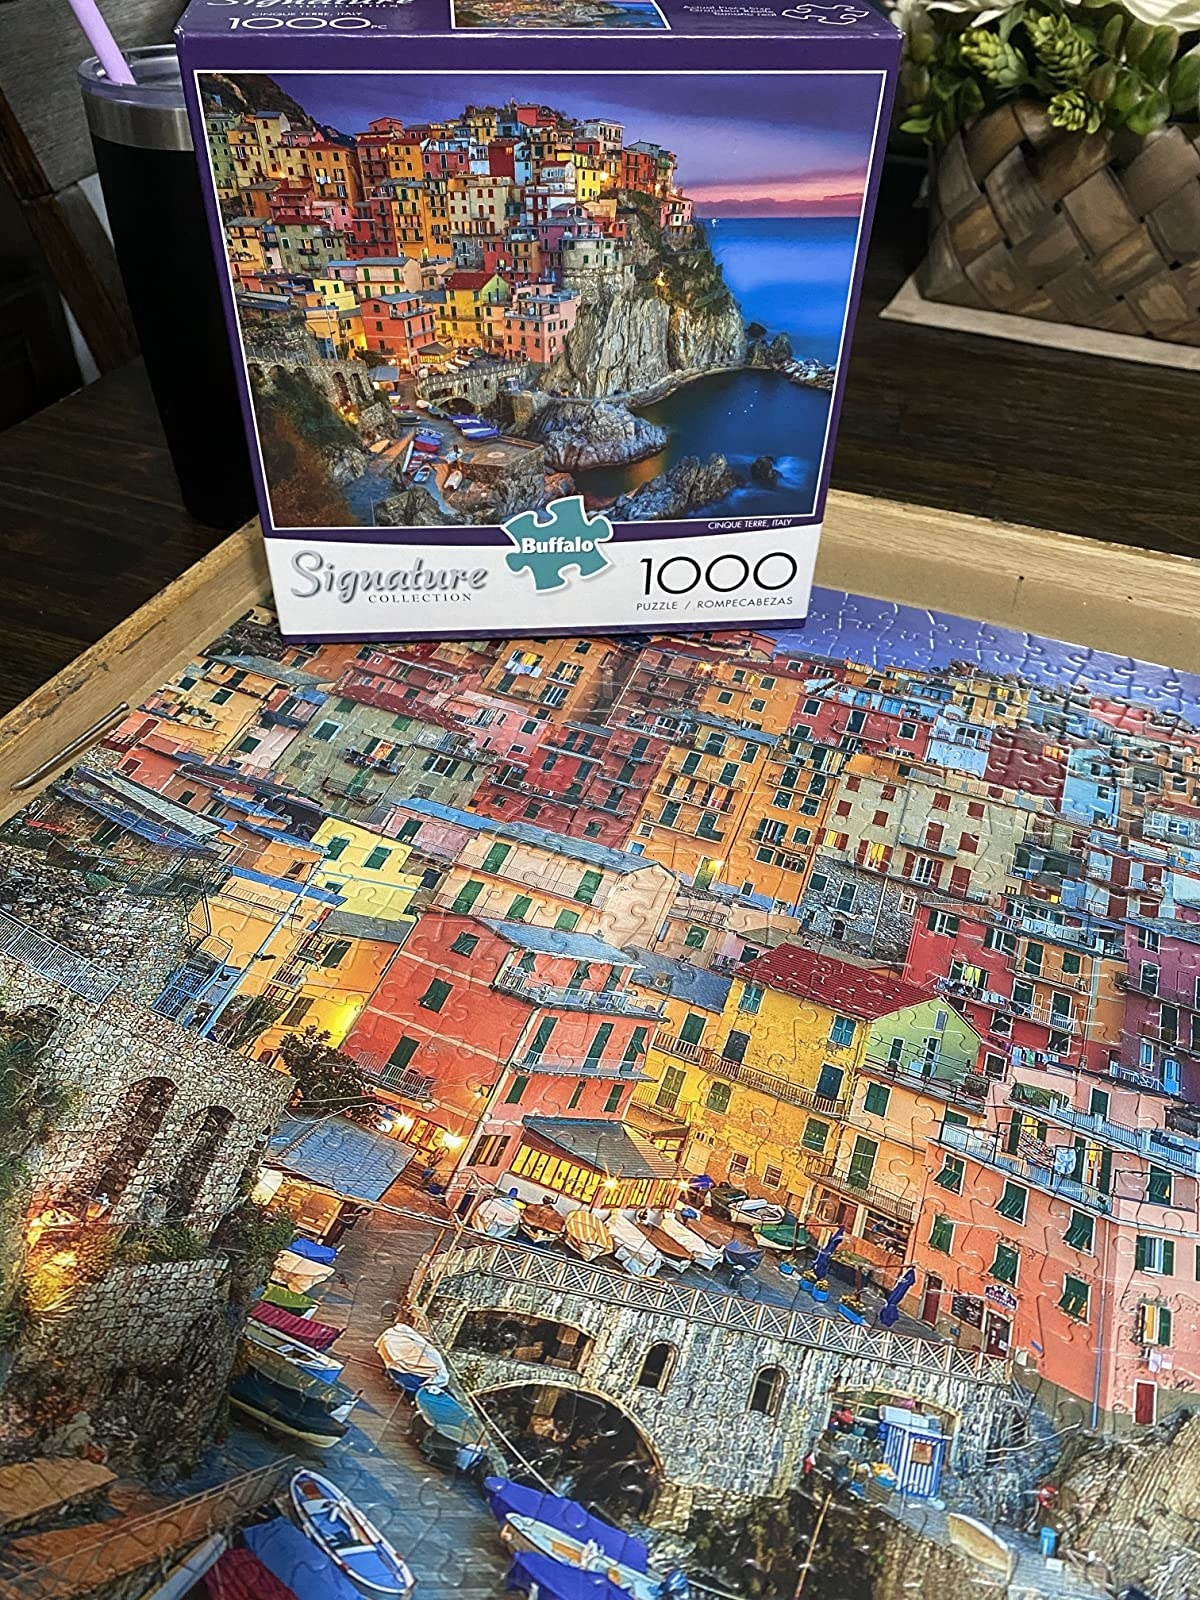 a reviewer's image of the finished puzzle